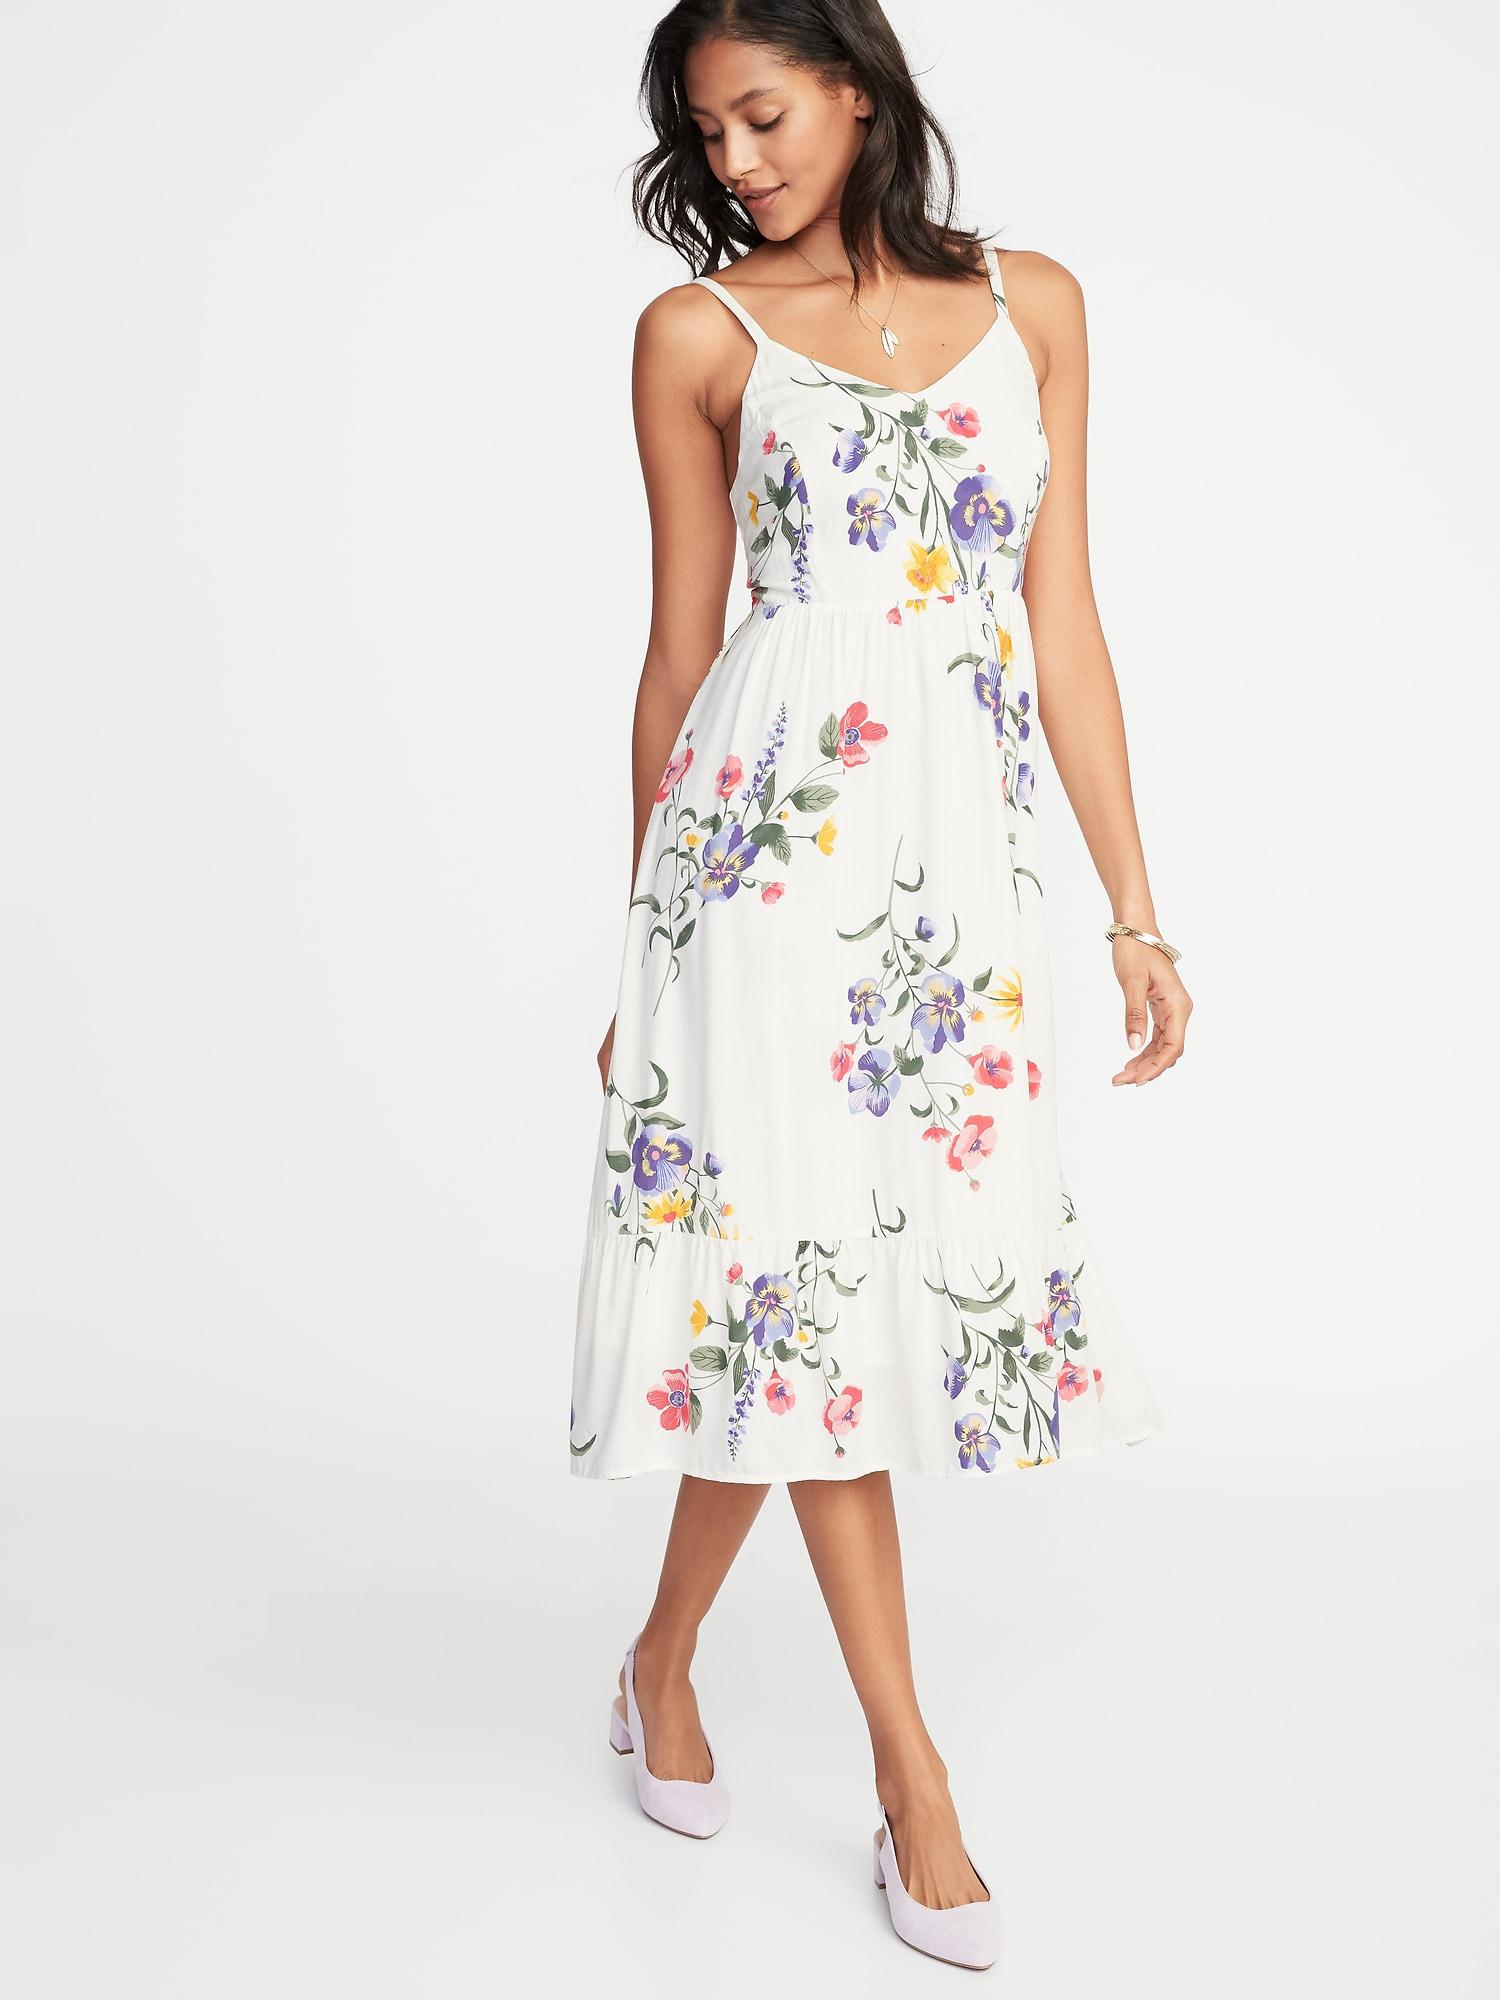 Old Navy Fit /& Flare Lined White Floral Cami Dress   Sz M   NWT